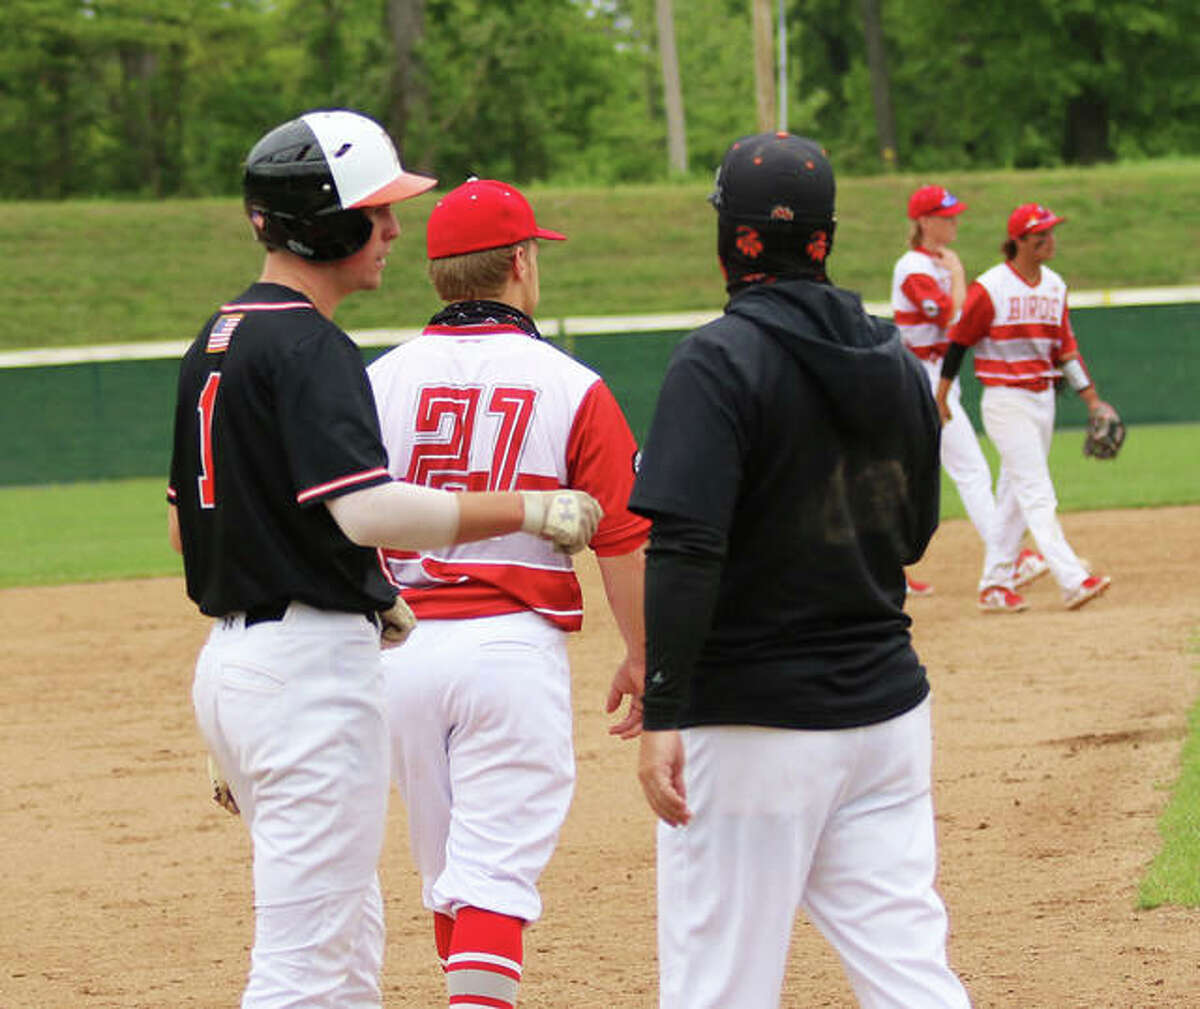 Edwardsville coach Tim Funkhouser gets a fist bump from his son and Tigers shortstop Evan Funkhouser at third base during a game last season at Alton High in Alton.